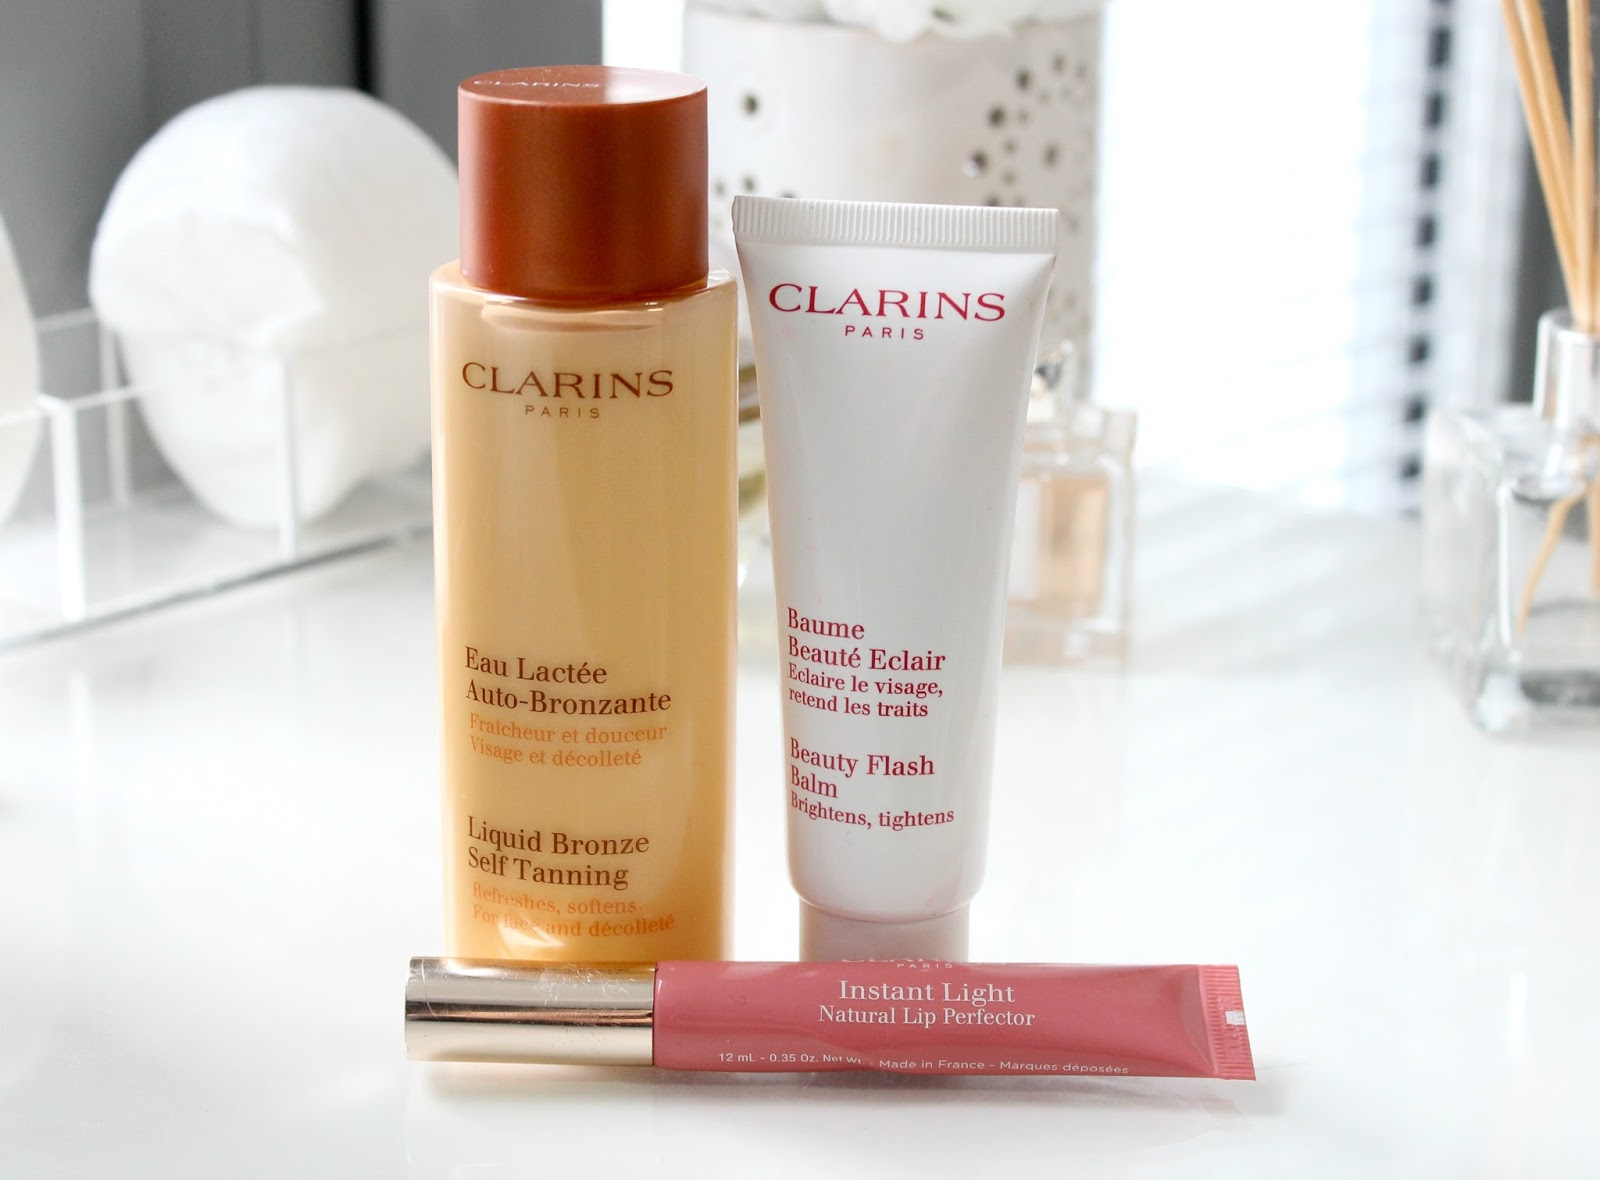 Cult Clarins Products Couture Girl